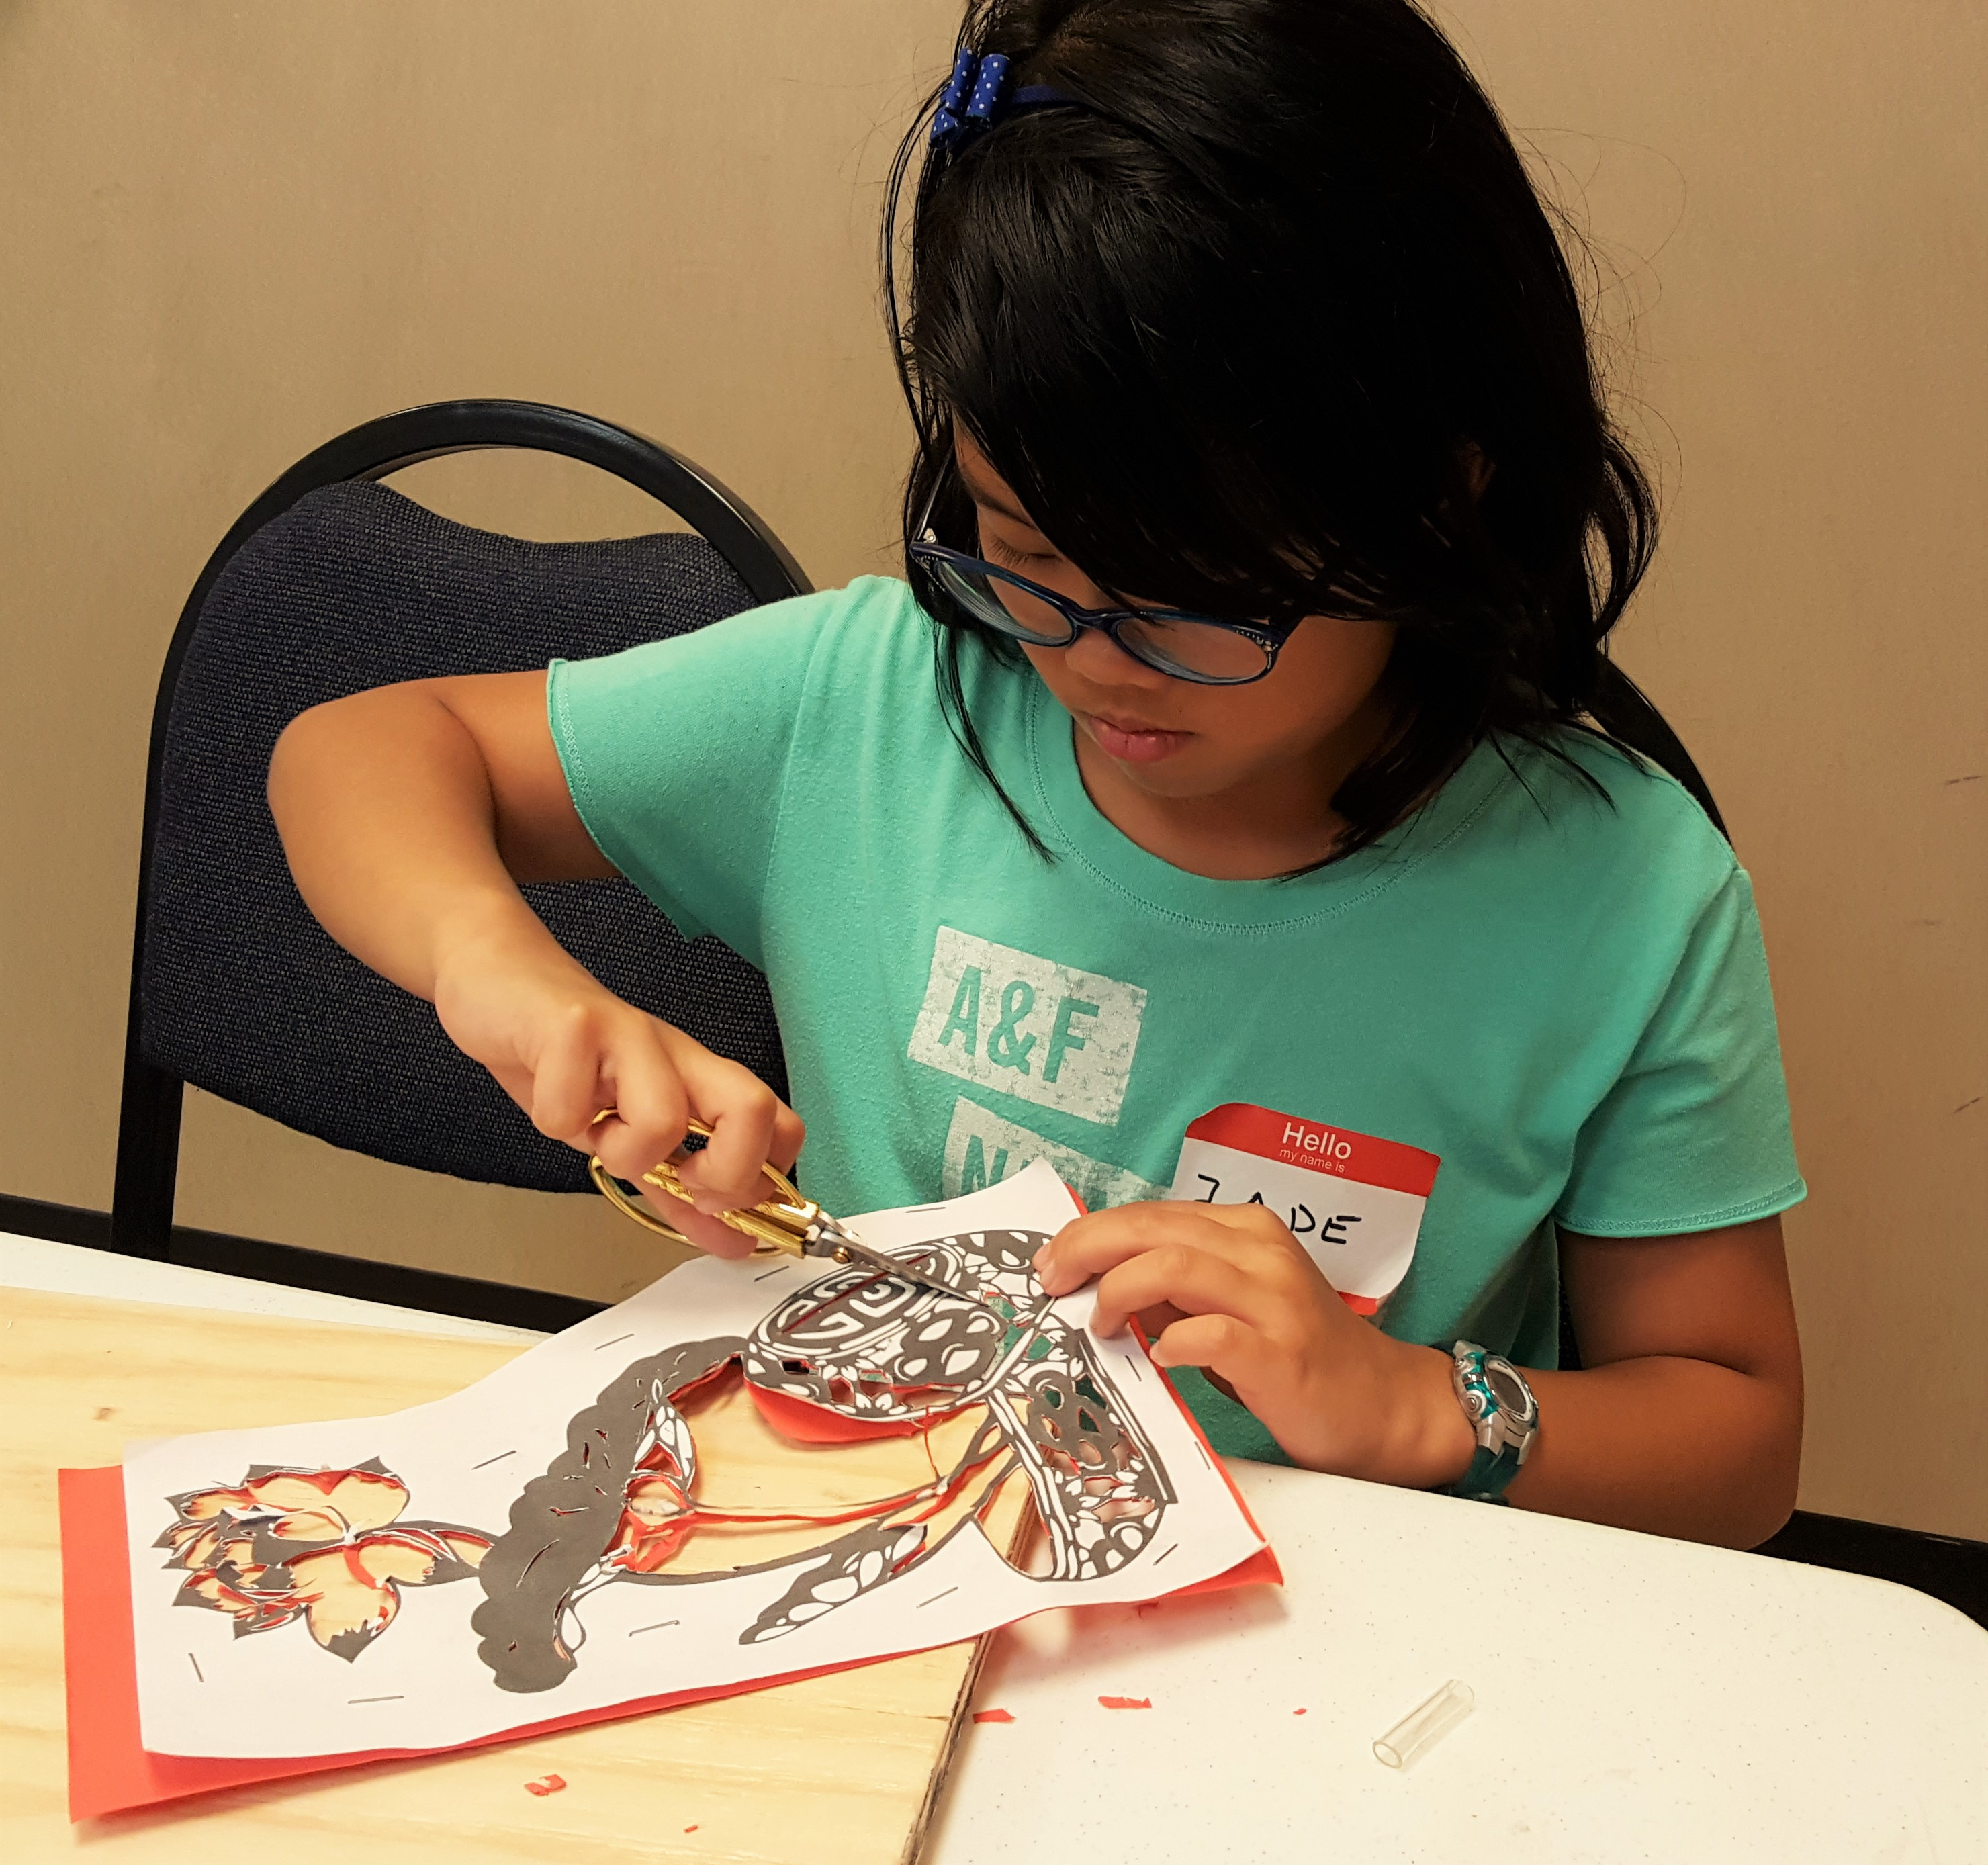 Paper Cutting Chinese Arts Camp